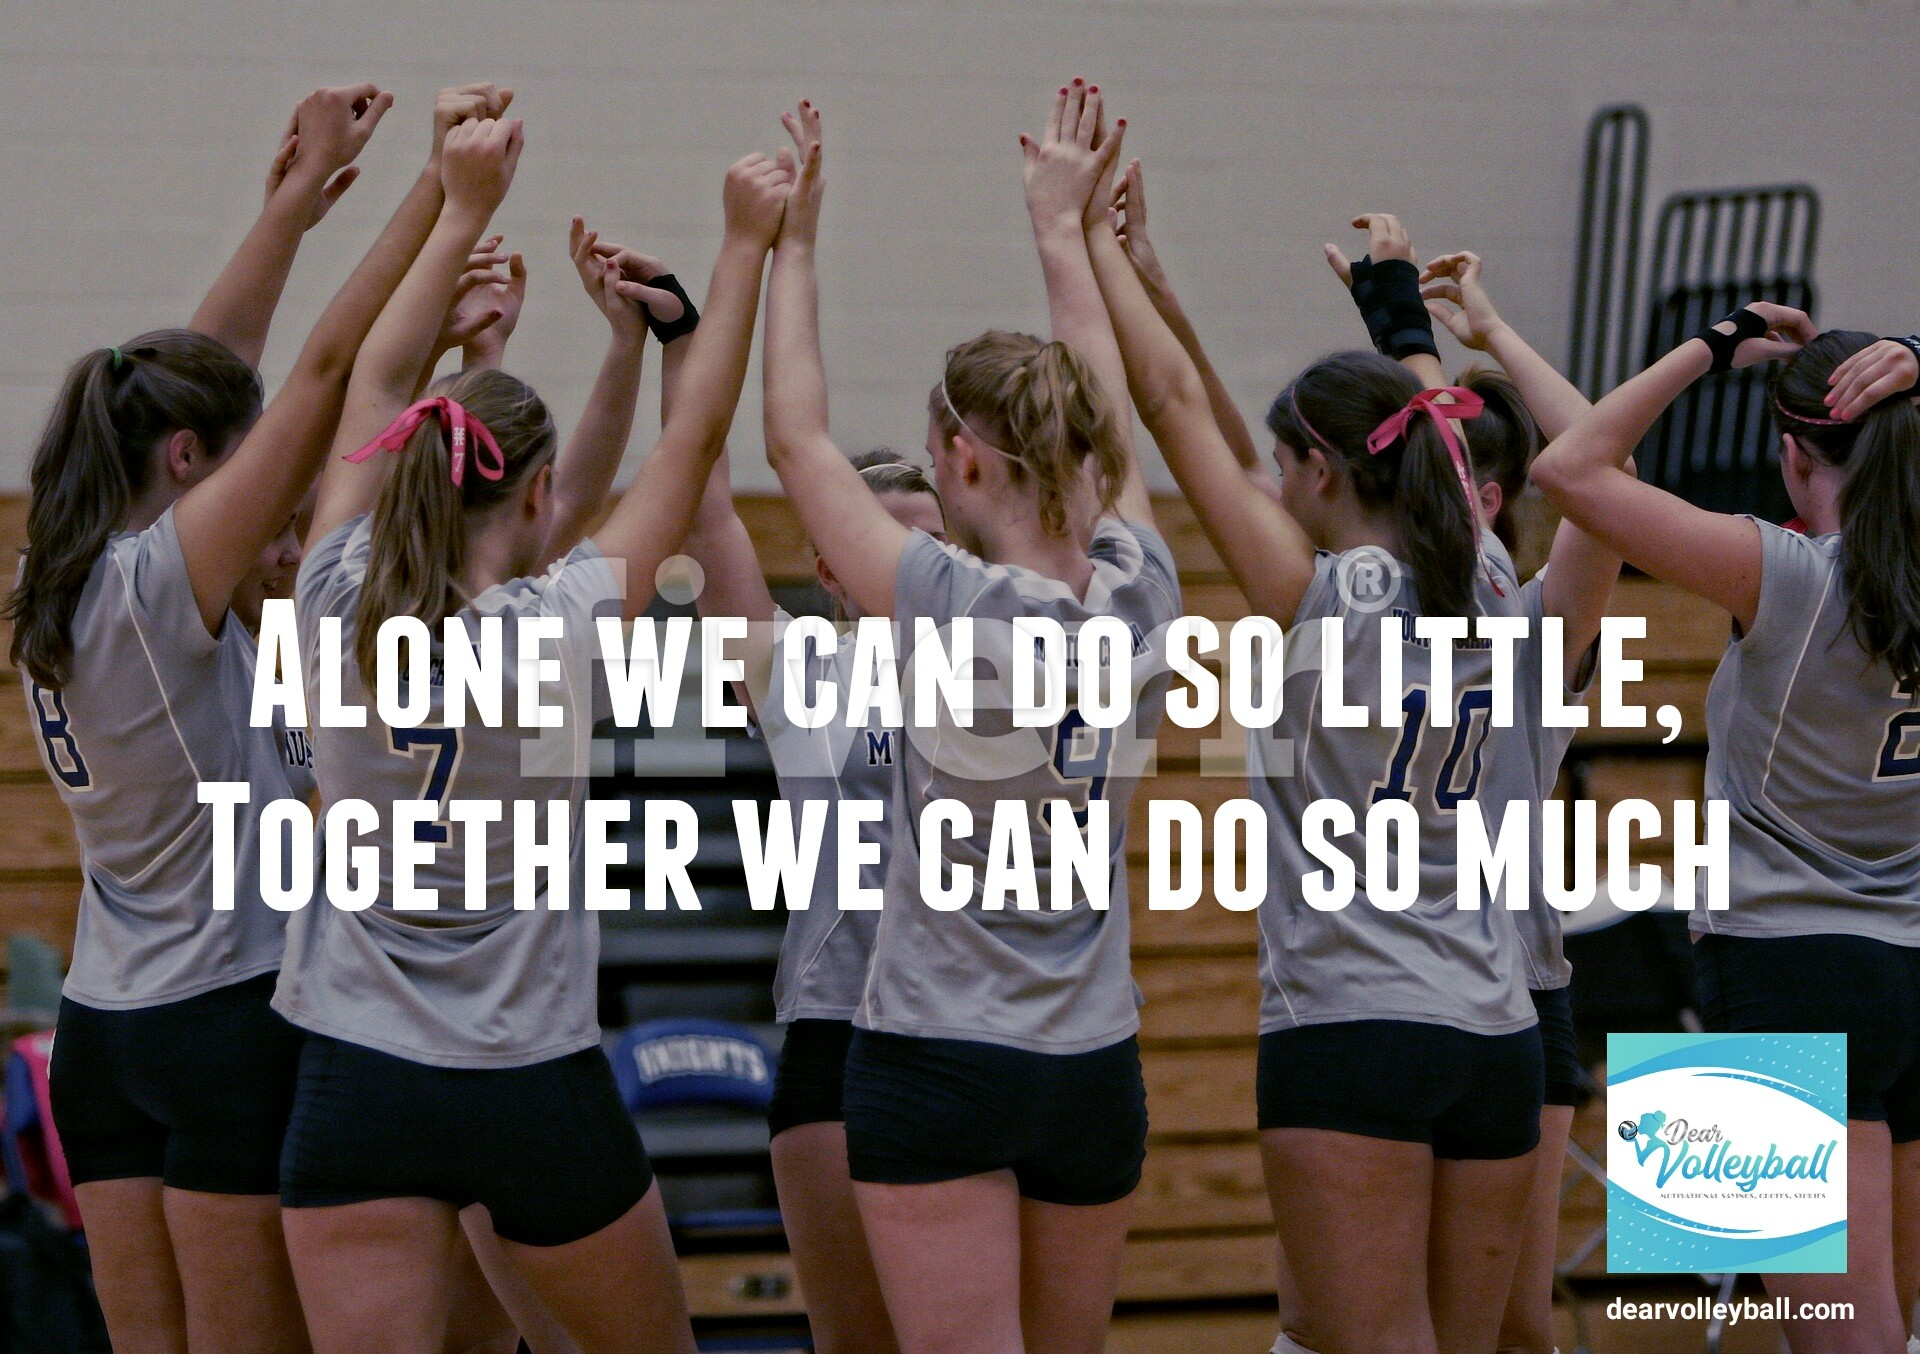 Alone we can do so little, together we can do so much and other volleyball coach quotes on DearVolleyball.com.